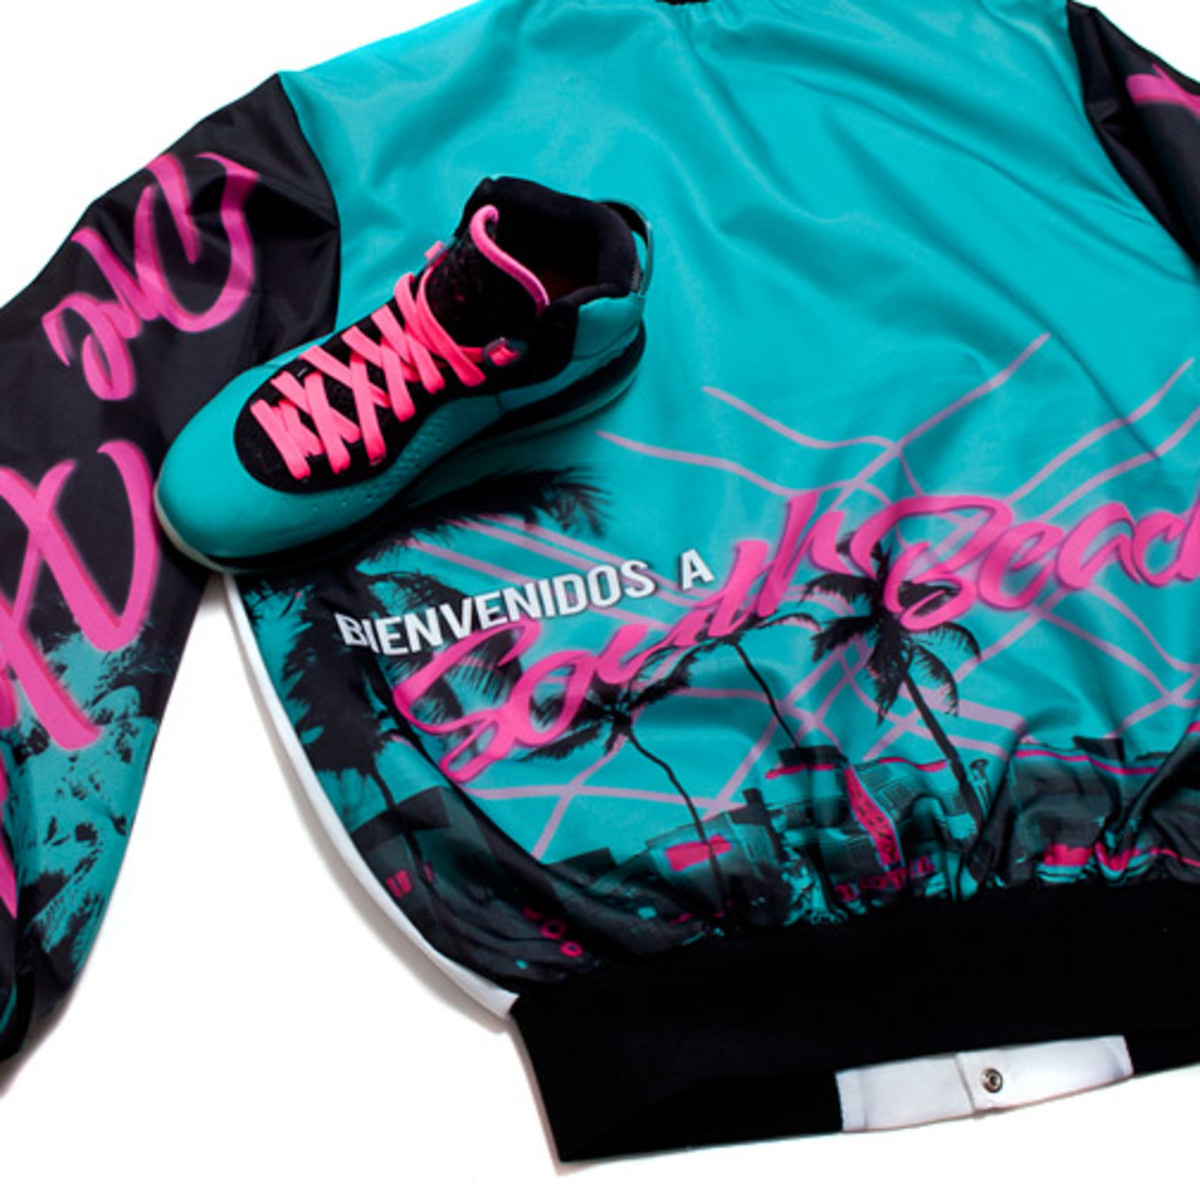 37f6a322eec0d1 Notone Preheat South Beach Jacket - Freshness Mag